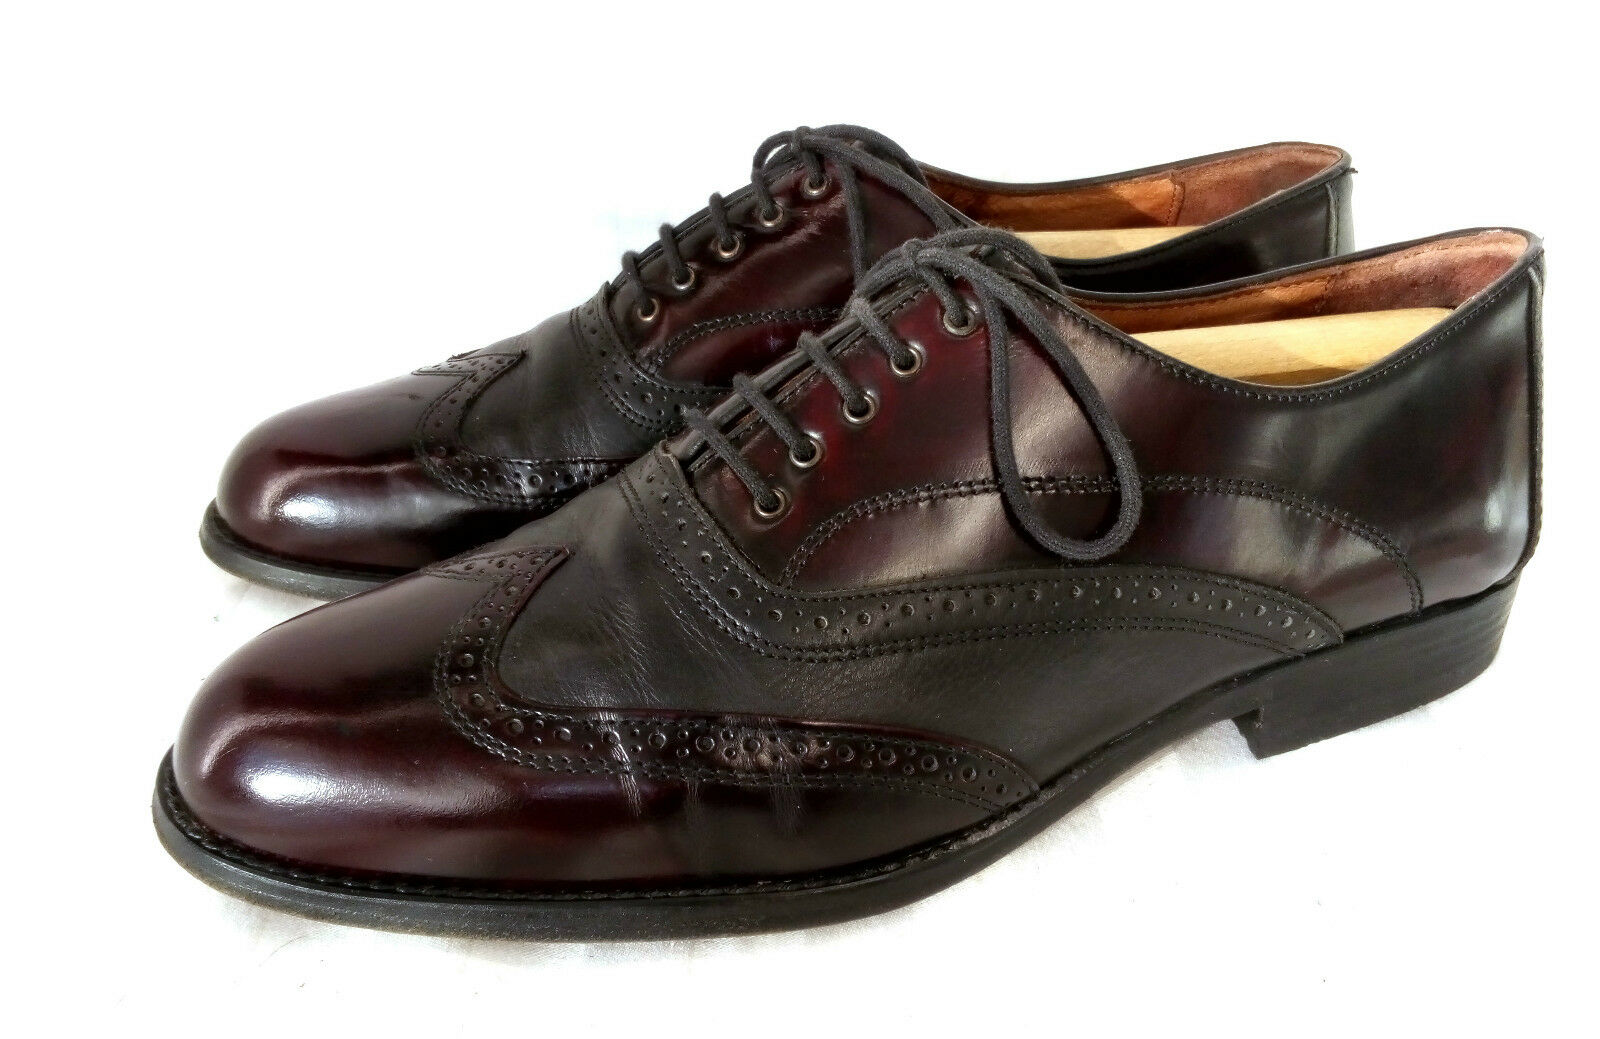 Franco Grifone SPECTATOR Full Brogue Oxford Herrenschuhe Burgundy Schwarz 44